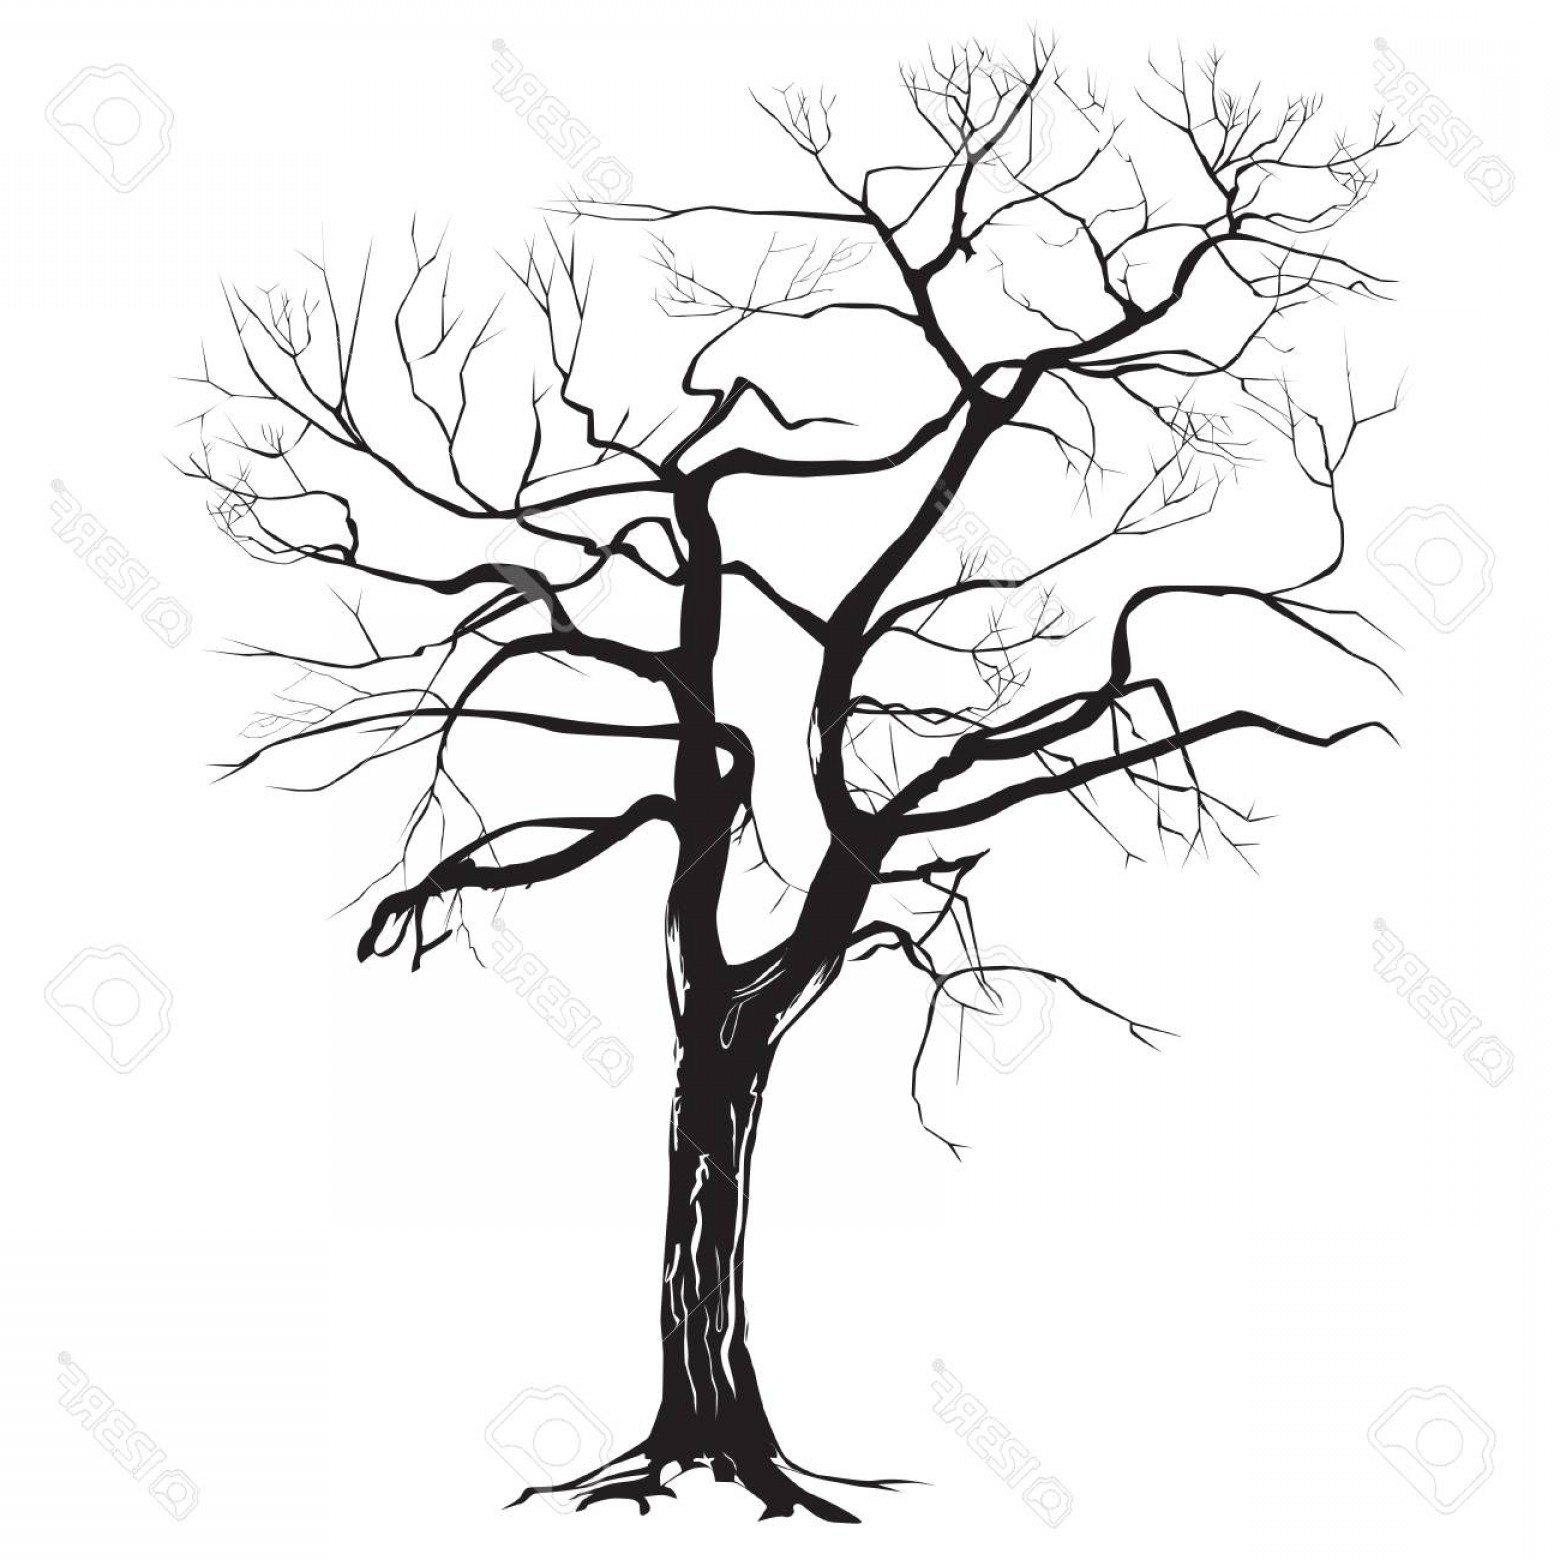 Tree Trunk Silhouette Vector: Photostock Vector Contrast Silhouette Of A Tree Trunk Without Leaves On A White Background